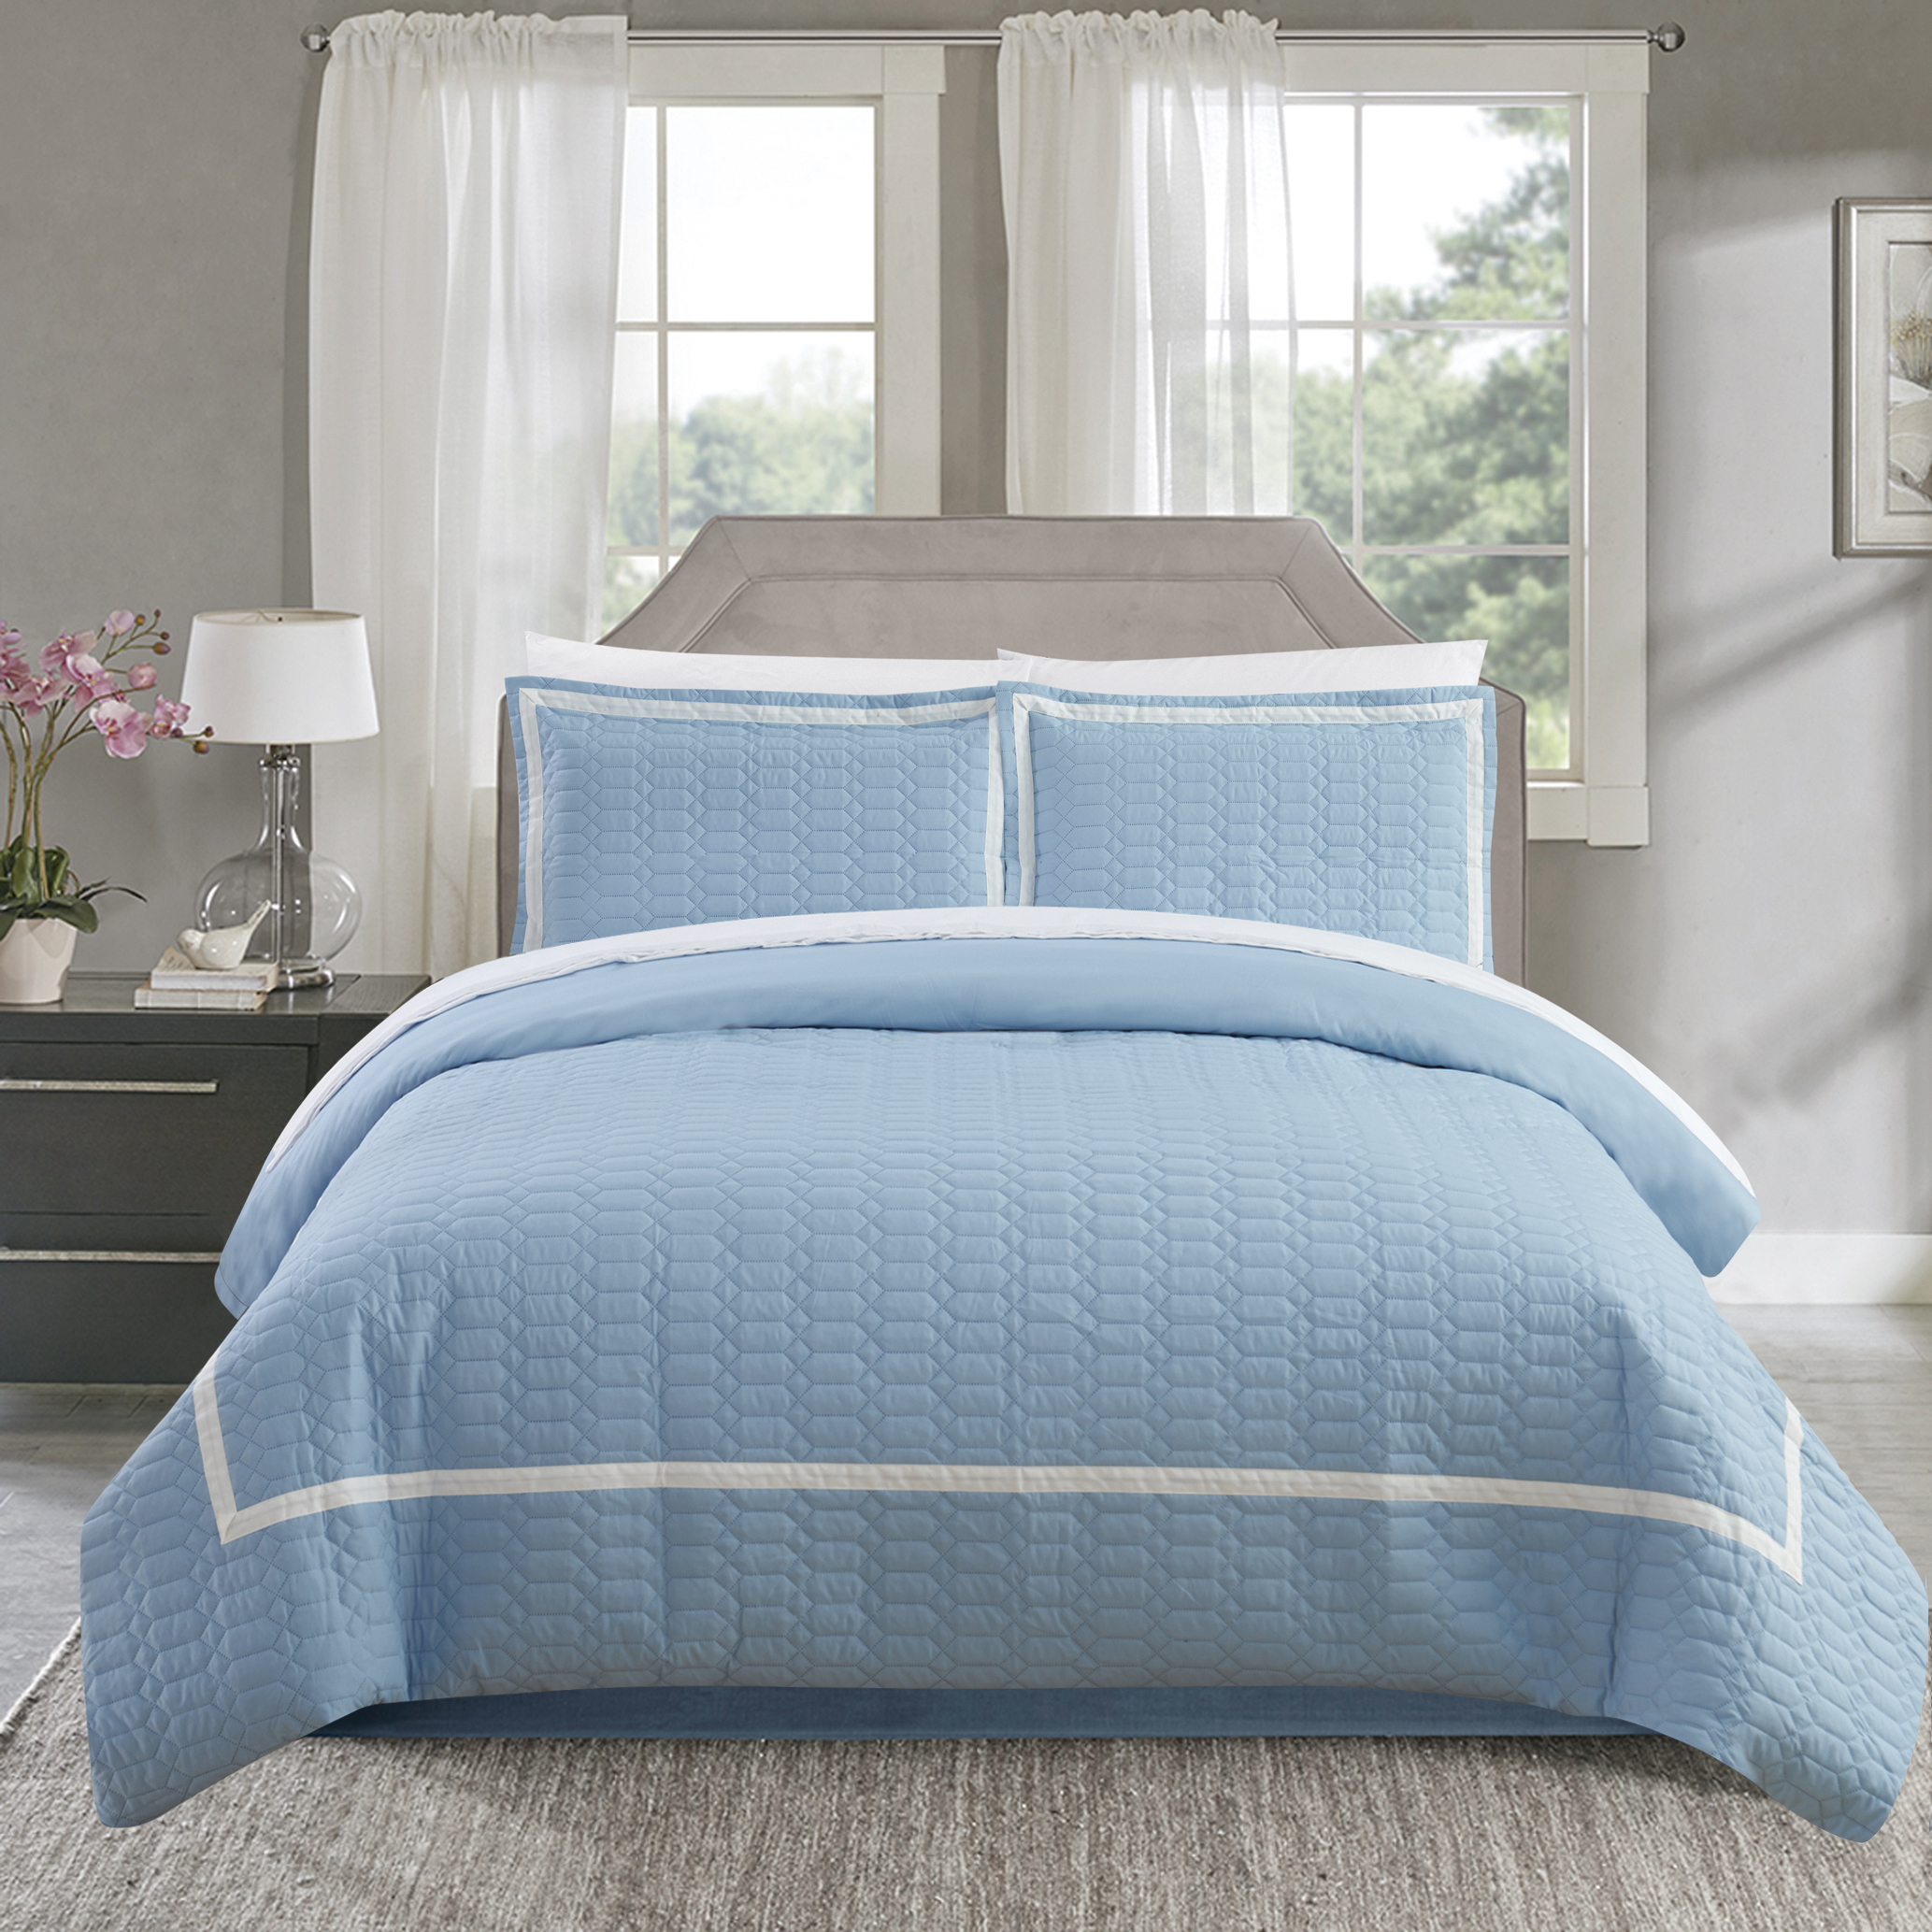 Dawn 2 Piece Duvet Cover Set Hotel Collection Two Tone Banded Print Zipper Closure - Blue, King